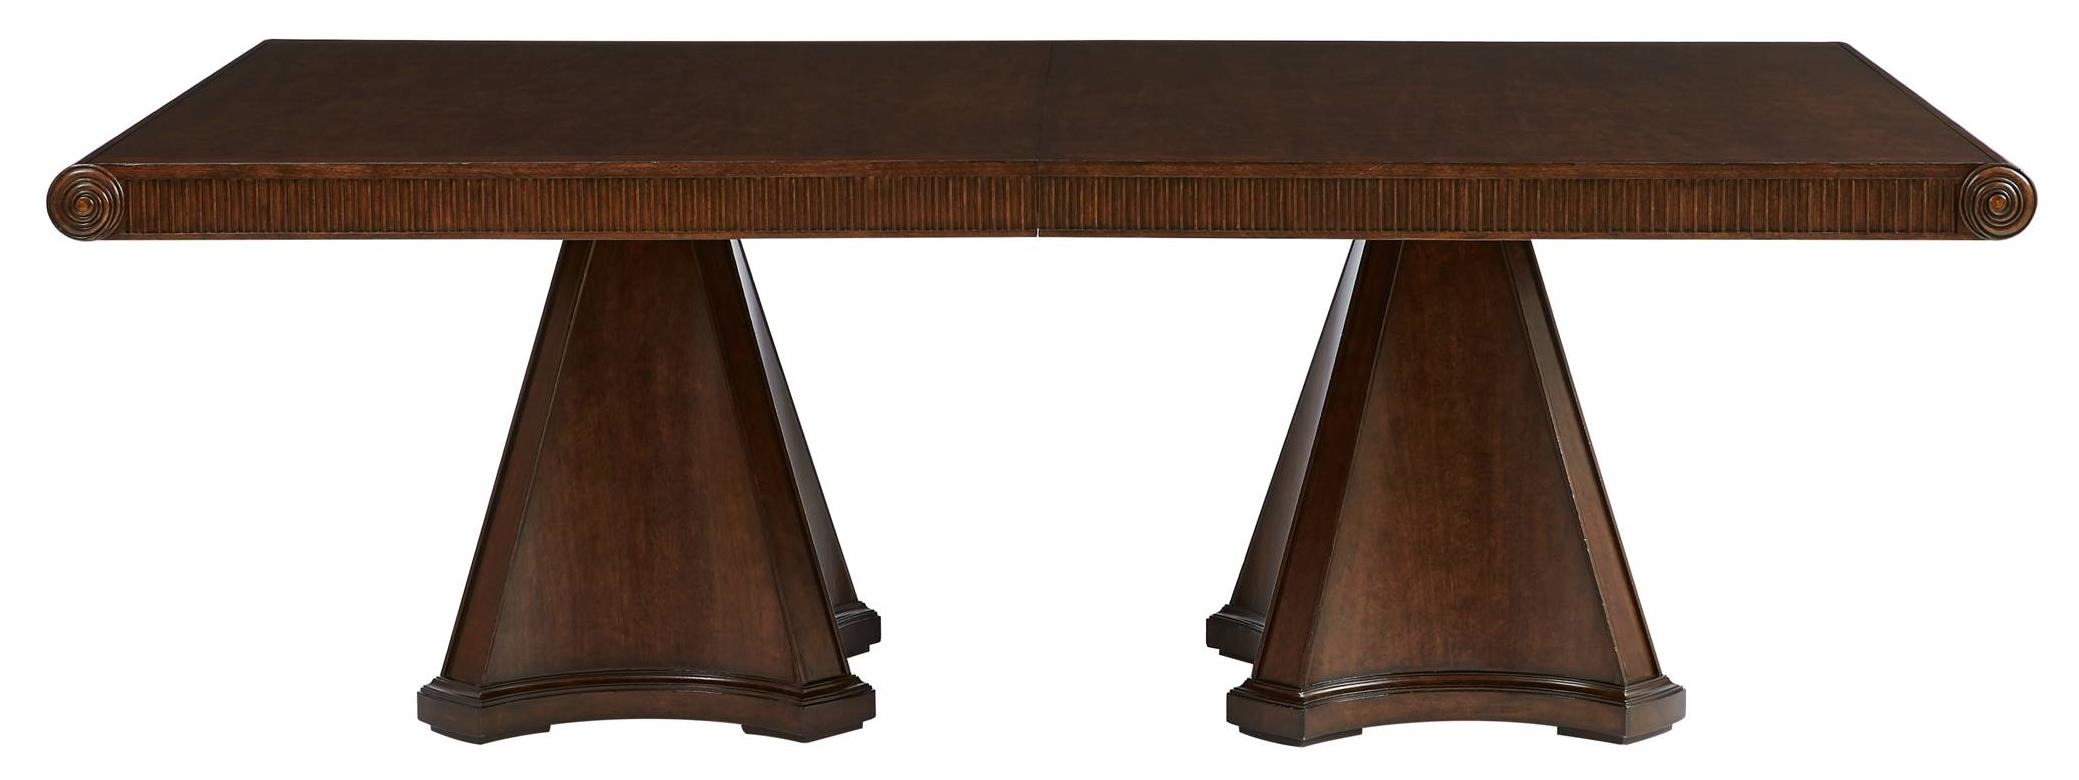 Stanley Furniture Villa Couture Dante Double Pedestal Table - Item Number: 510-11-36